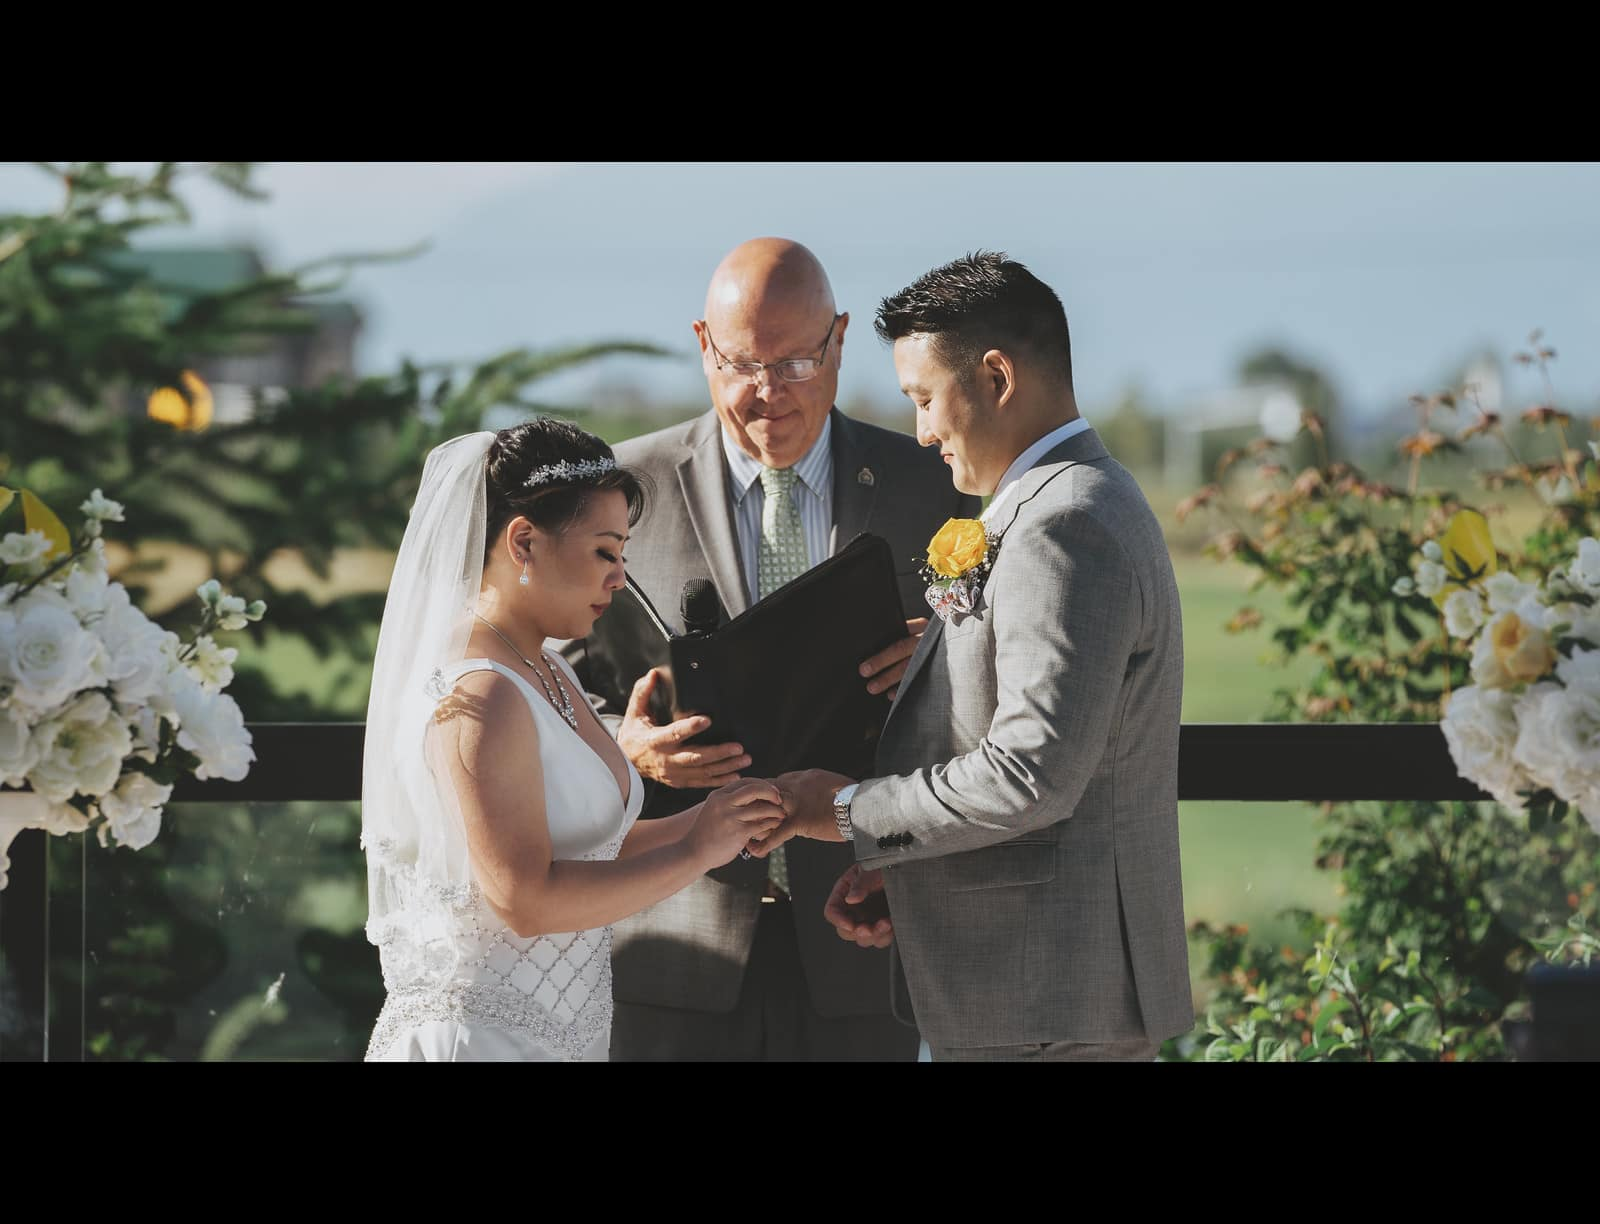 Couple exchanging rings, wedding ceremony